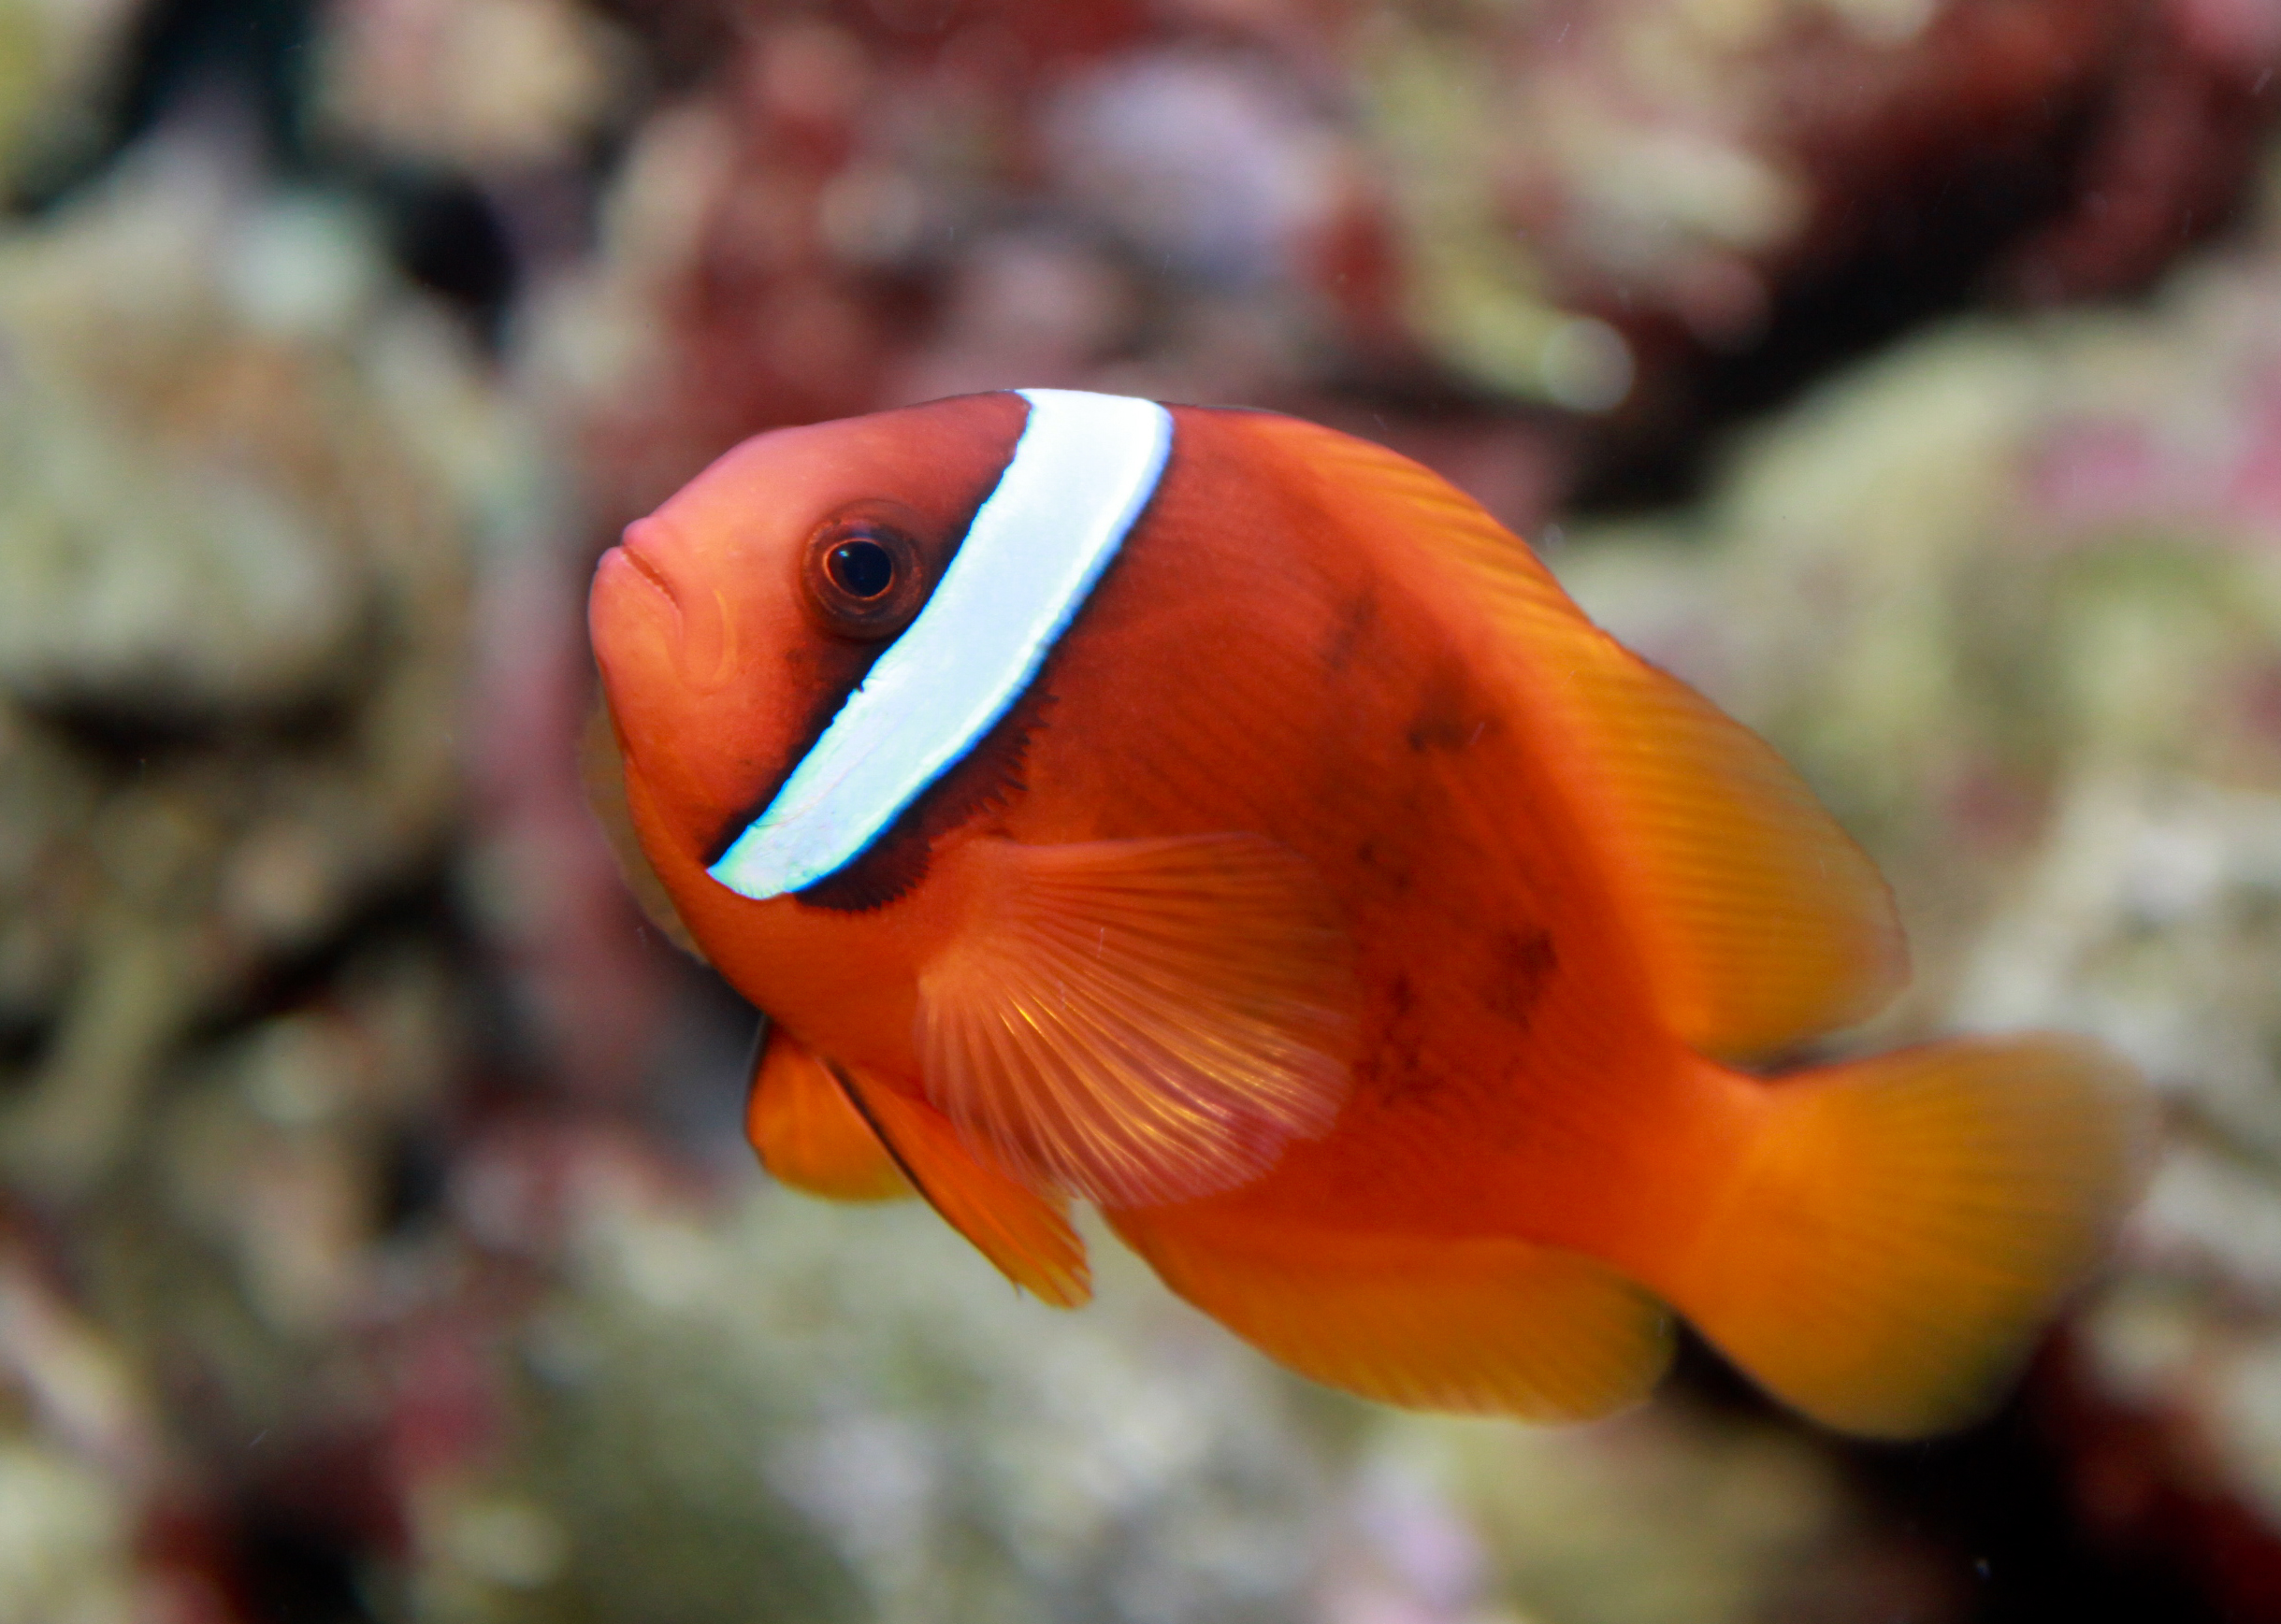 Tomato clownfish anemone - photo#23